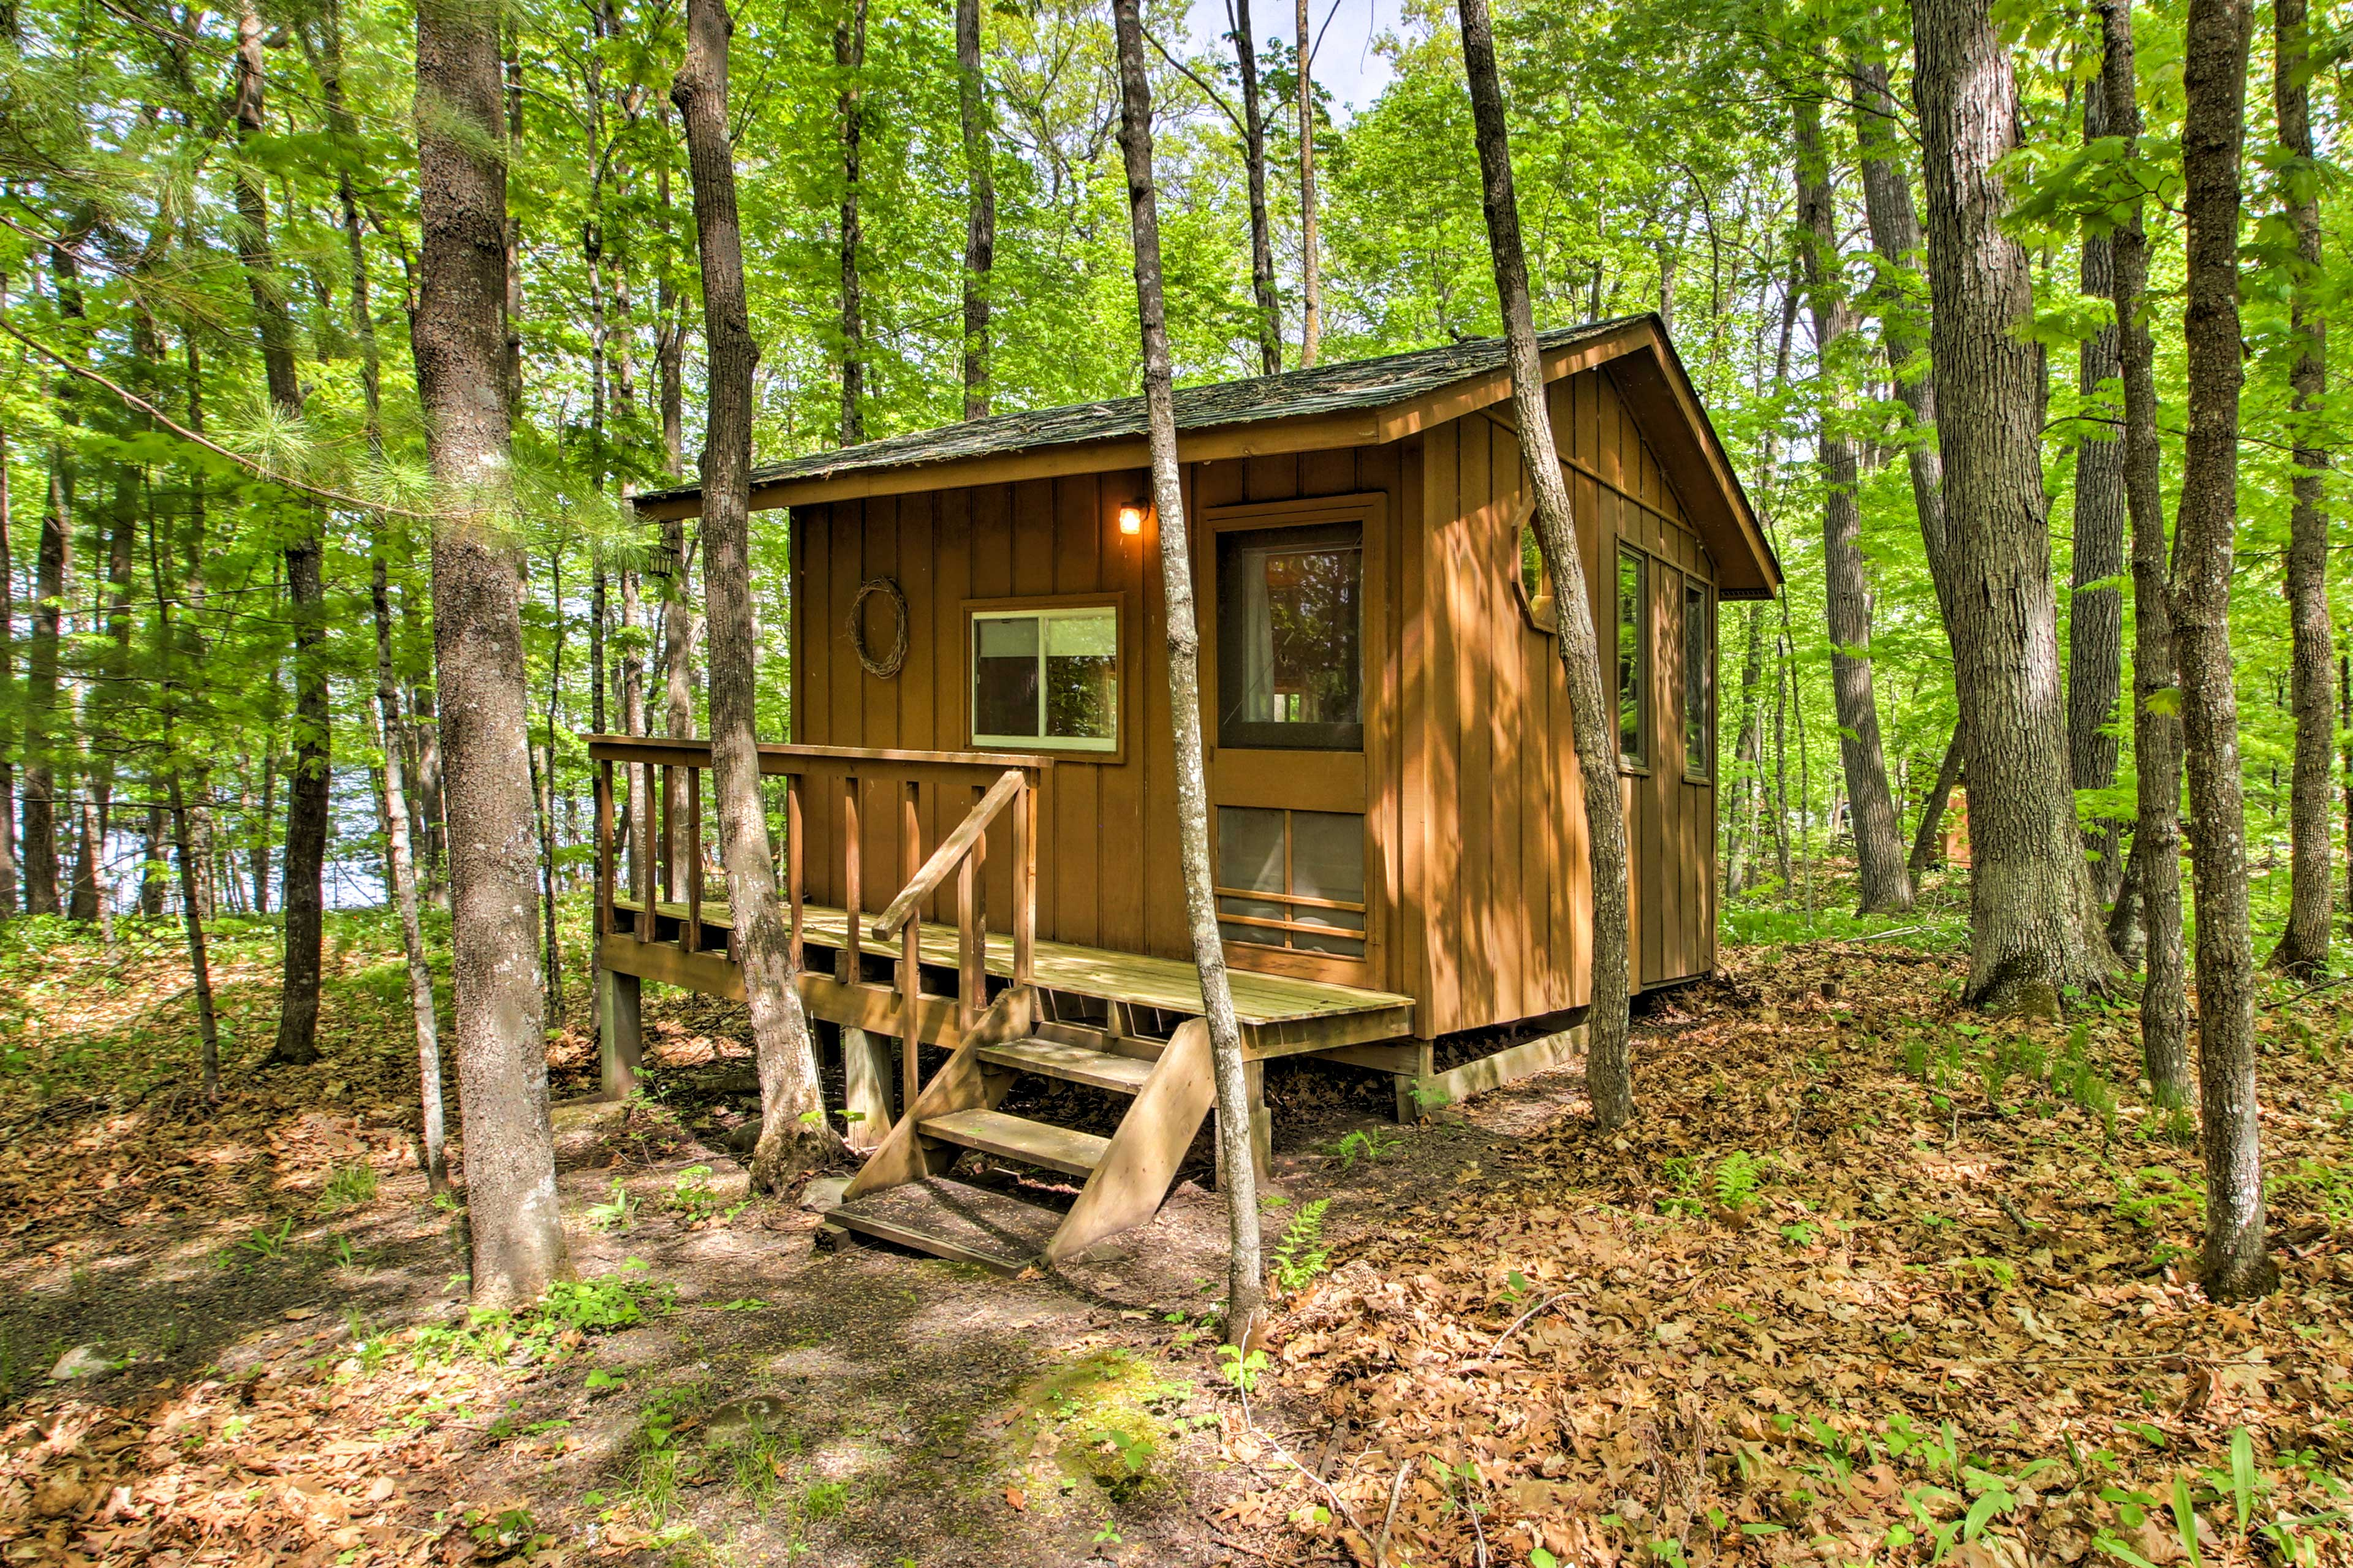 The detached bunk house is great for those seeking privacy.